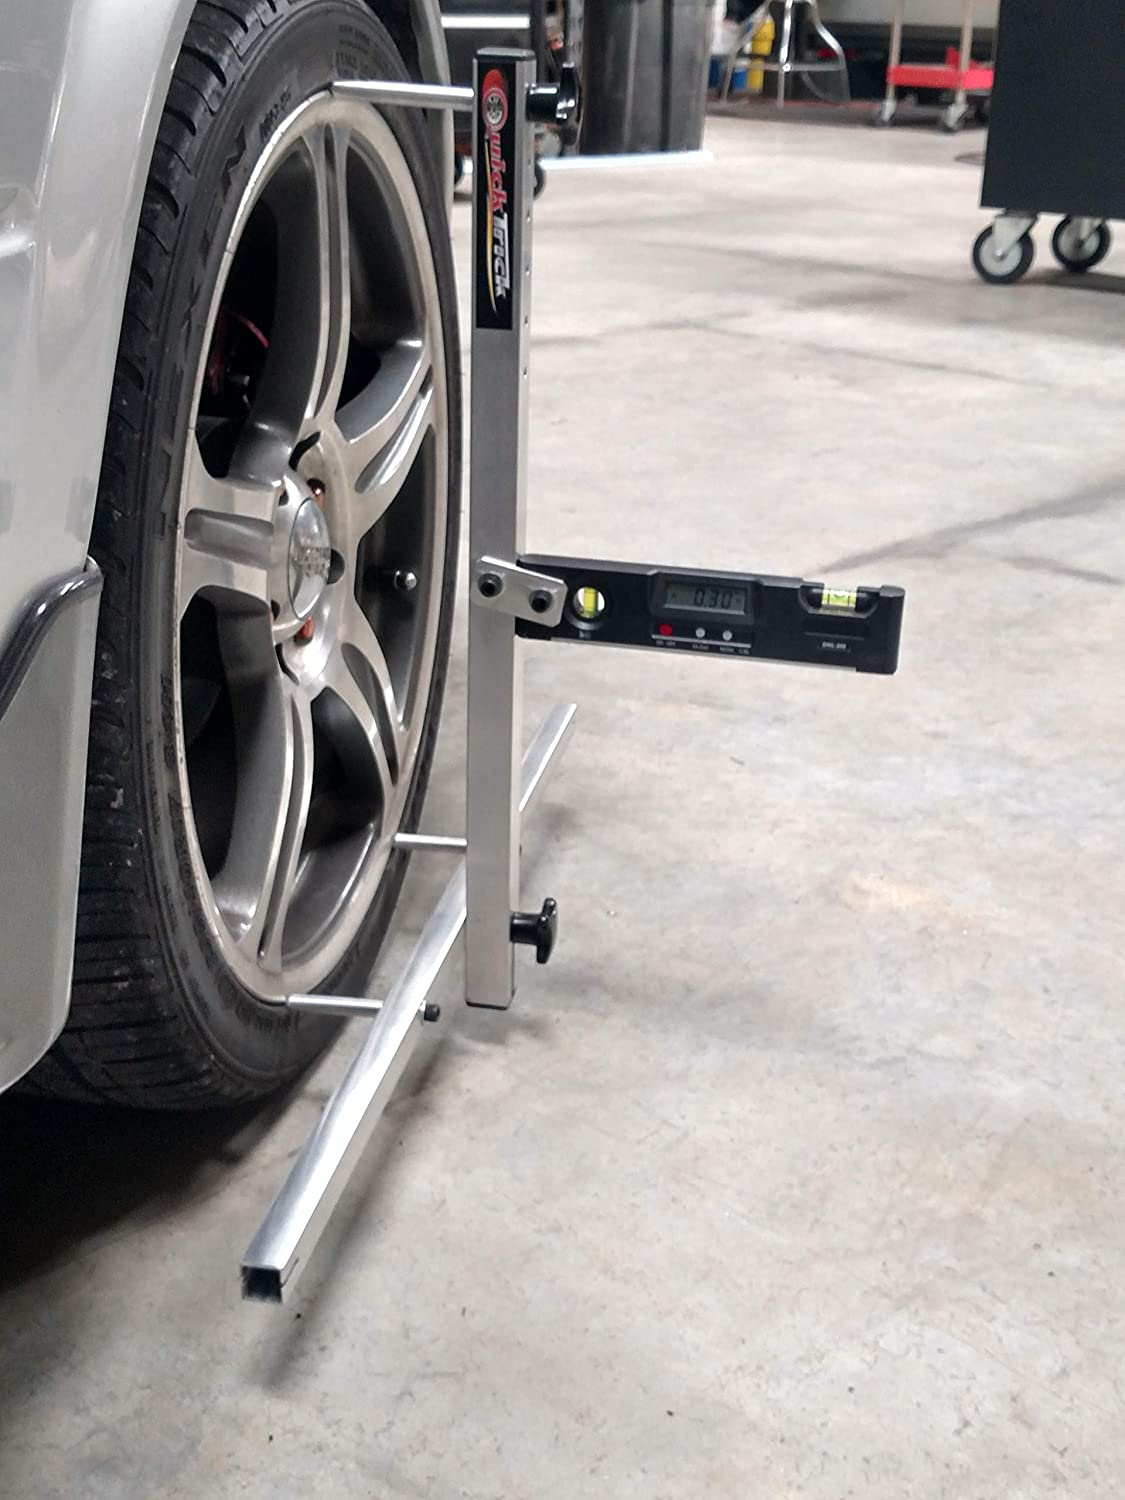 PMD Products Pair Wheel Alignment Turntable Turn Plates 10,000 Pounds Capacity w//Transition Bridge and Thrust Block